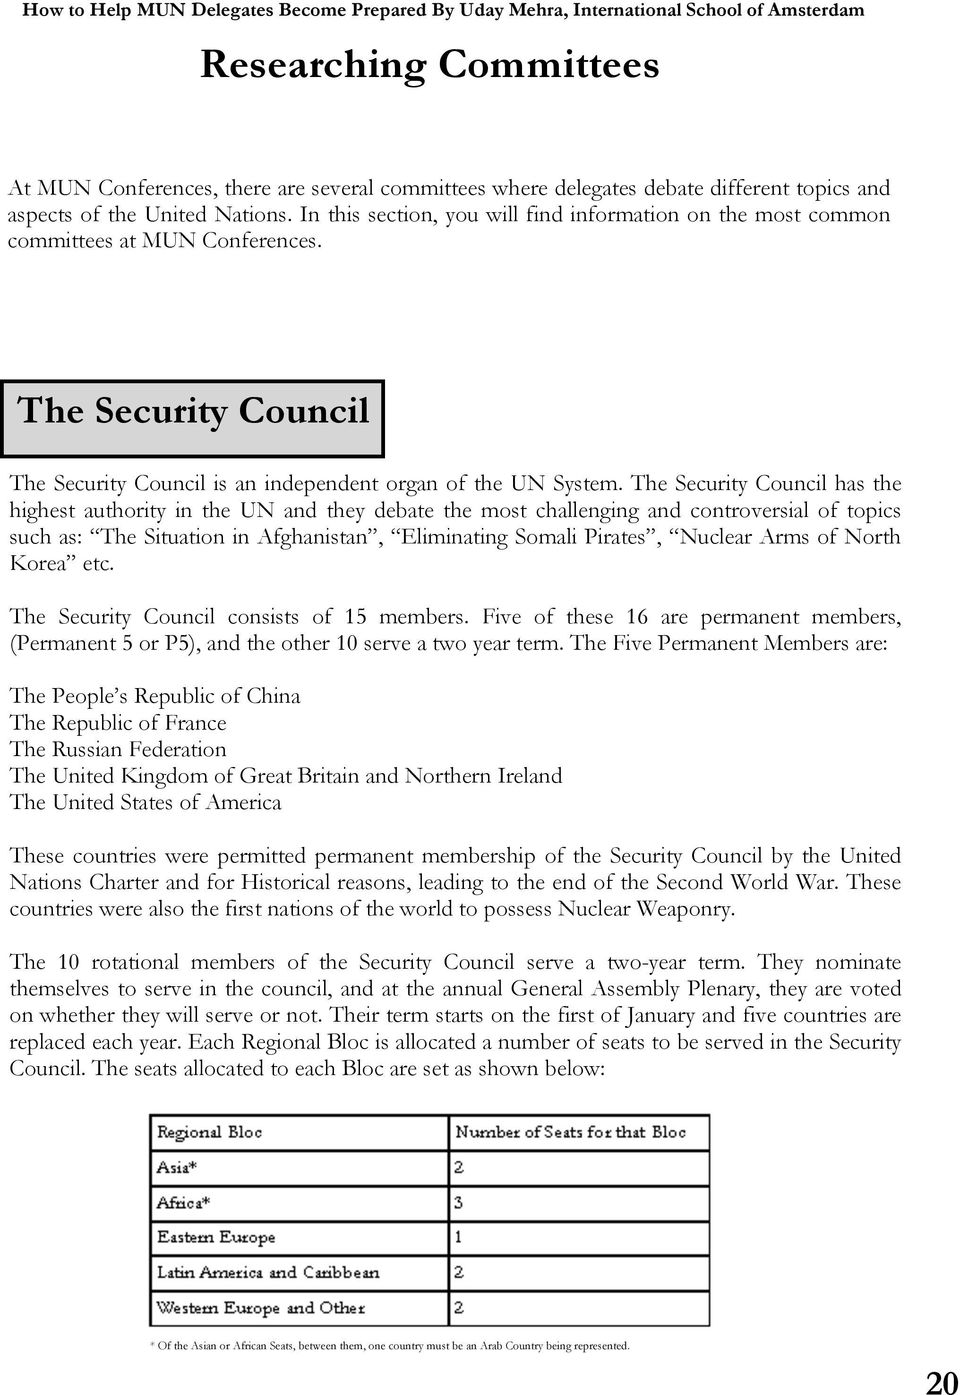 The Security Council has the highest authority in the UN and they debate the most challenging and controversial of topics such as: The Situation in Afghanistan, Eliminating Somali Pirates, Nuclear